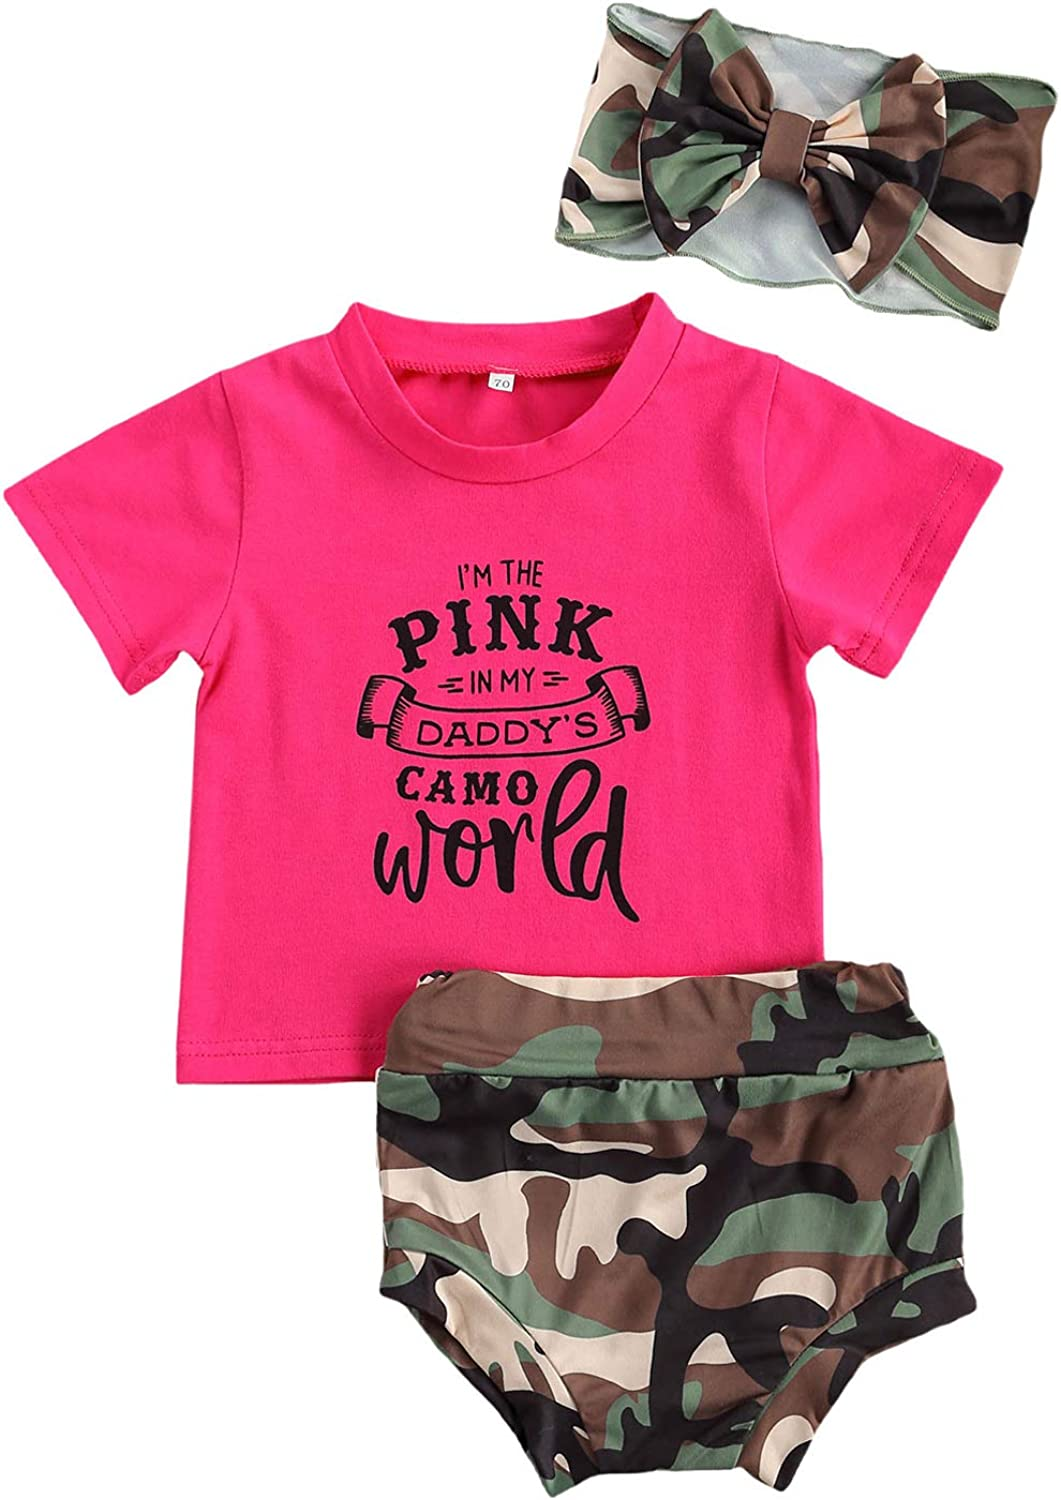 Fepege Baby Girls Letter Printed Short Sleeve T Shirt Camouflage Shorts Headband Outfits